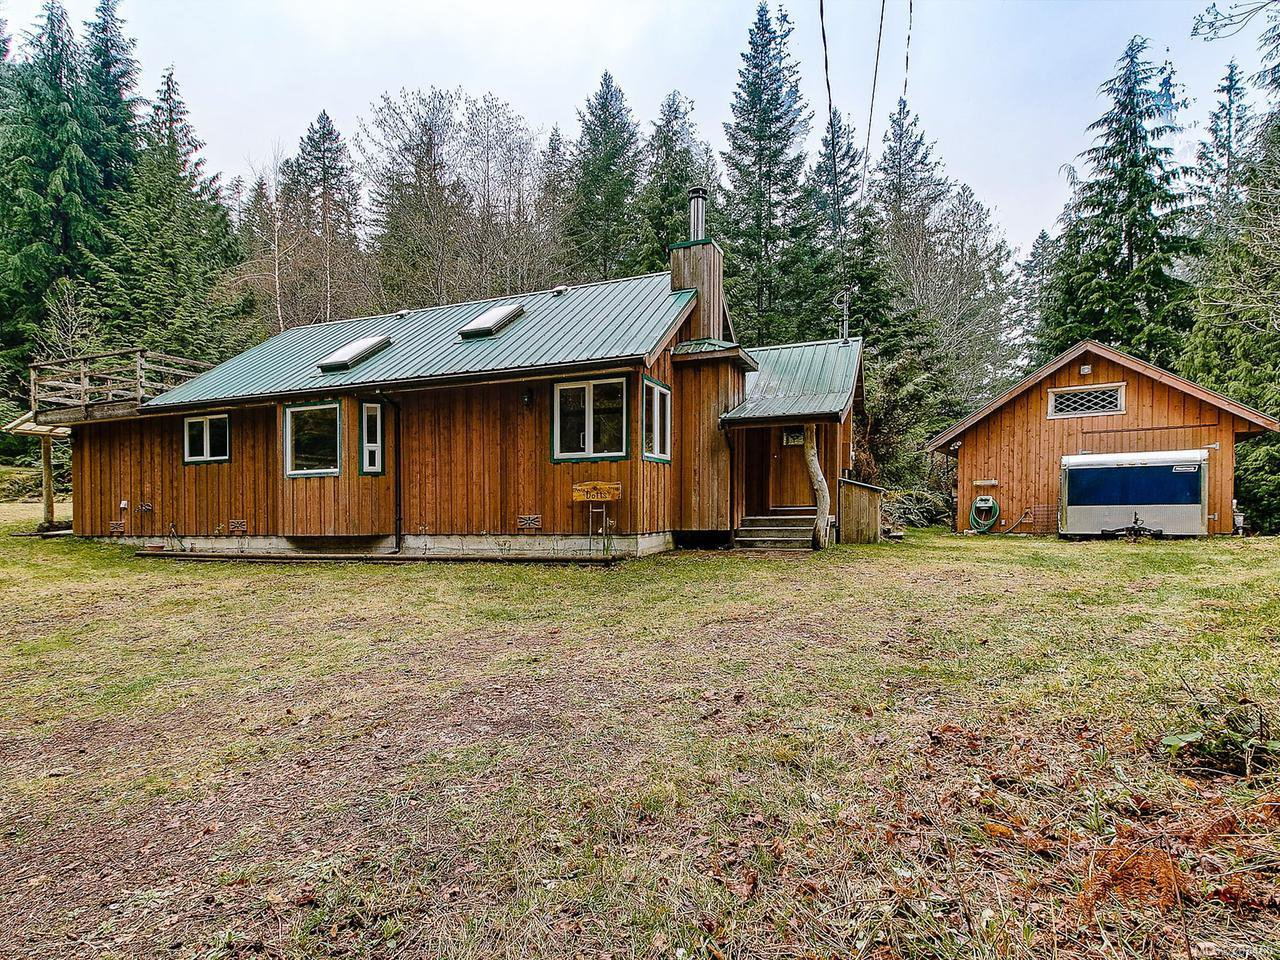 Main Photo: 415 WHALETOWN ROAD in CORTES ISLAND: Isl Cortes Island House for sale (Islands)  : MLS®# 783460